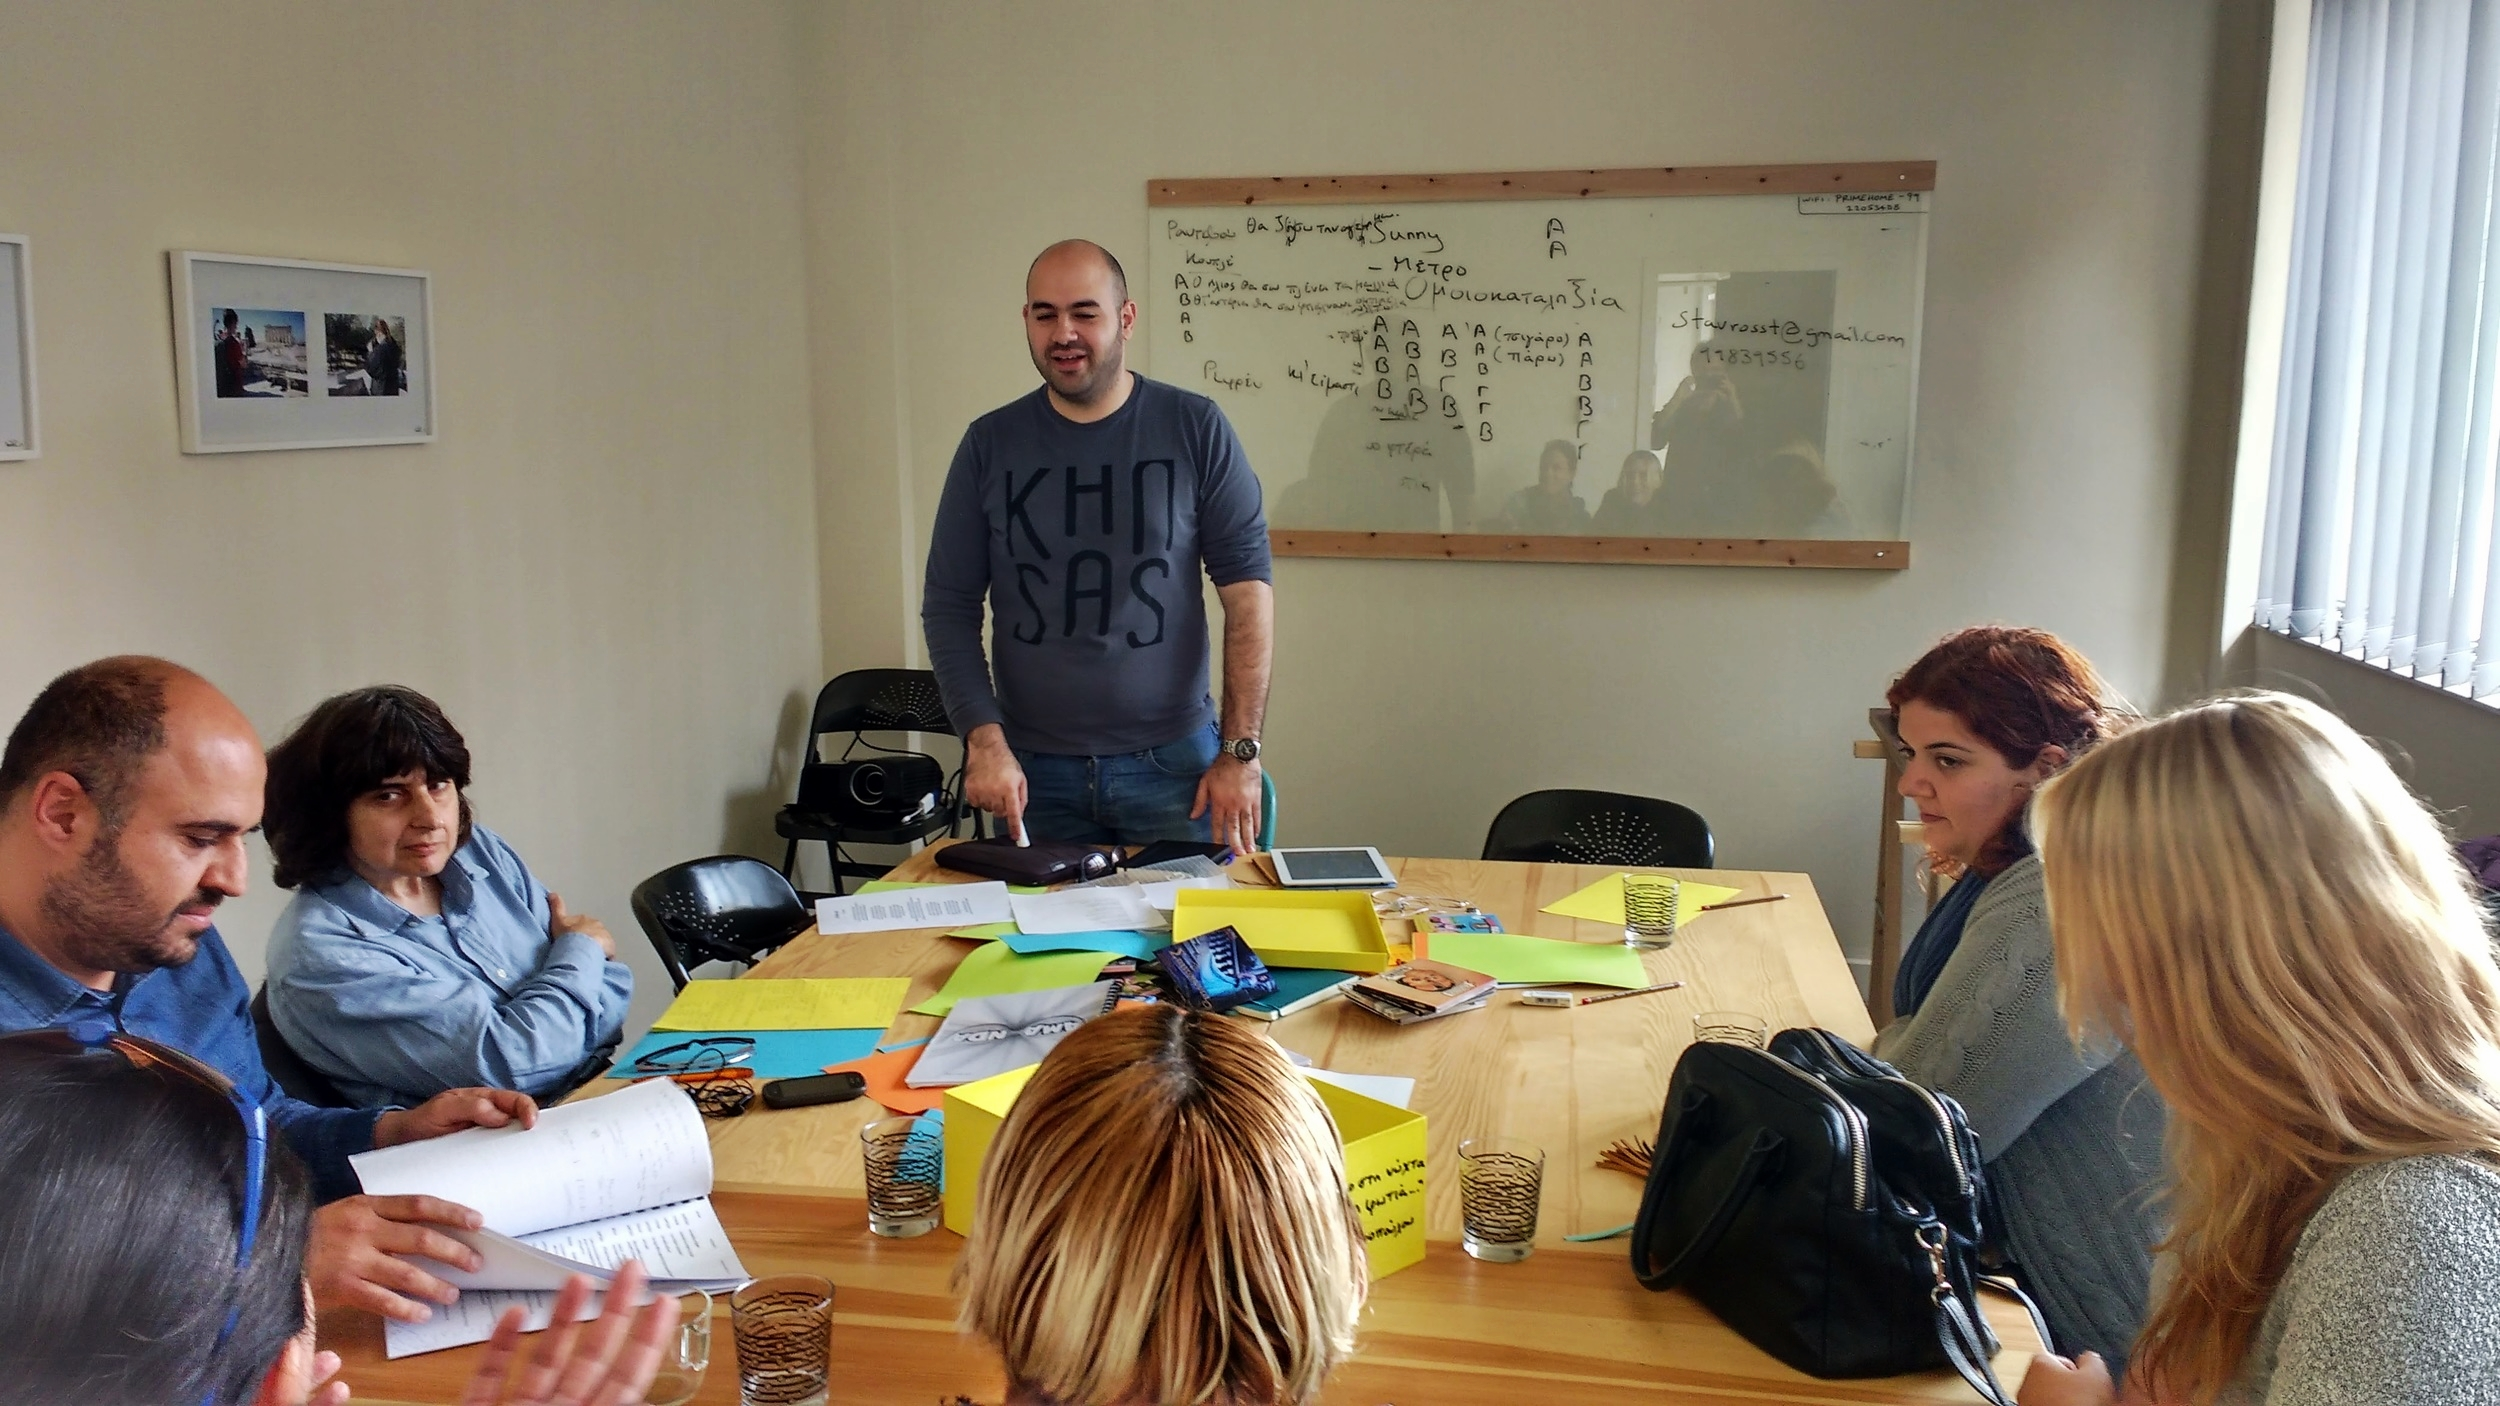 Stavros Stavrou leading his Lyric Writing Workshop in Greek at Write CY,19 March, 2016